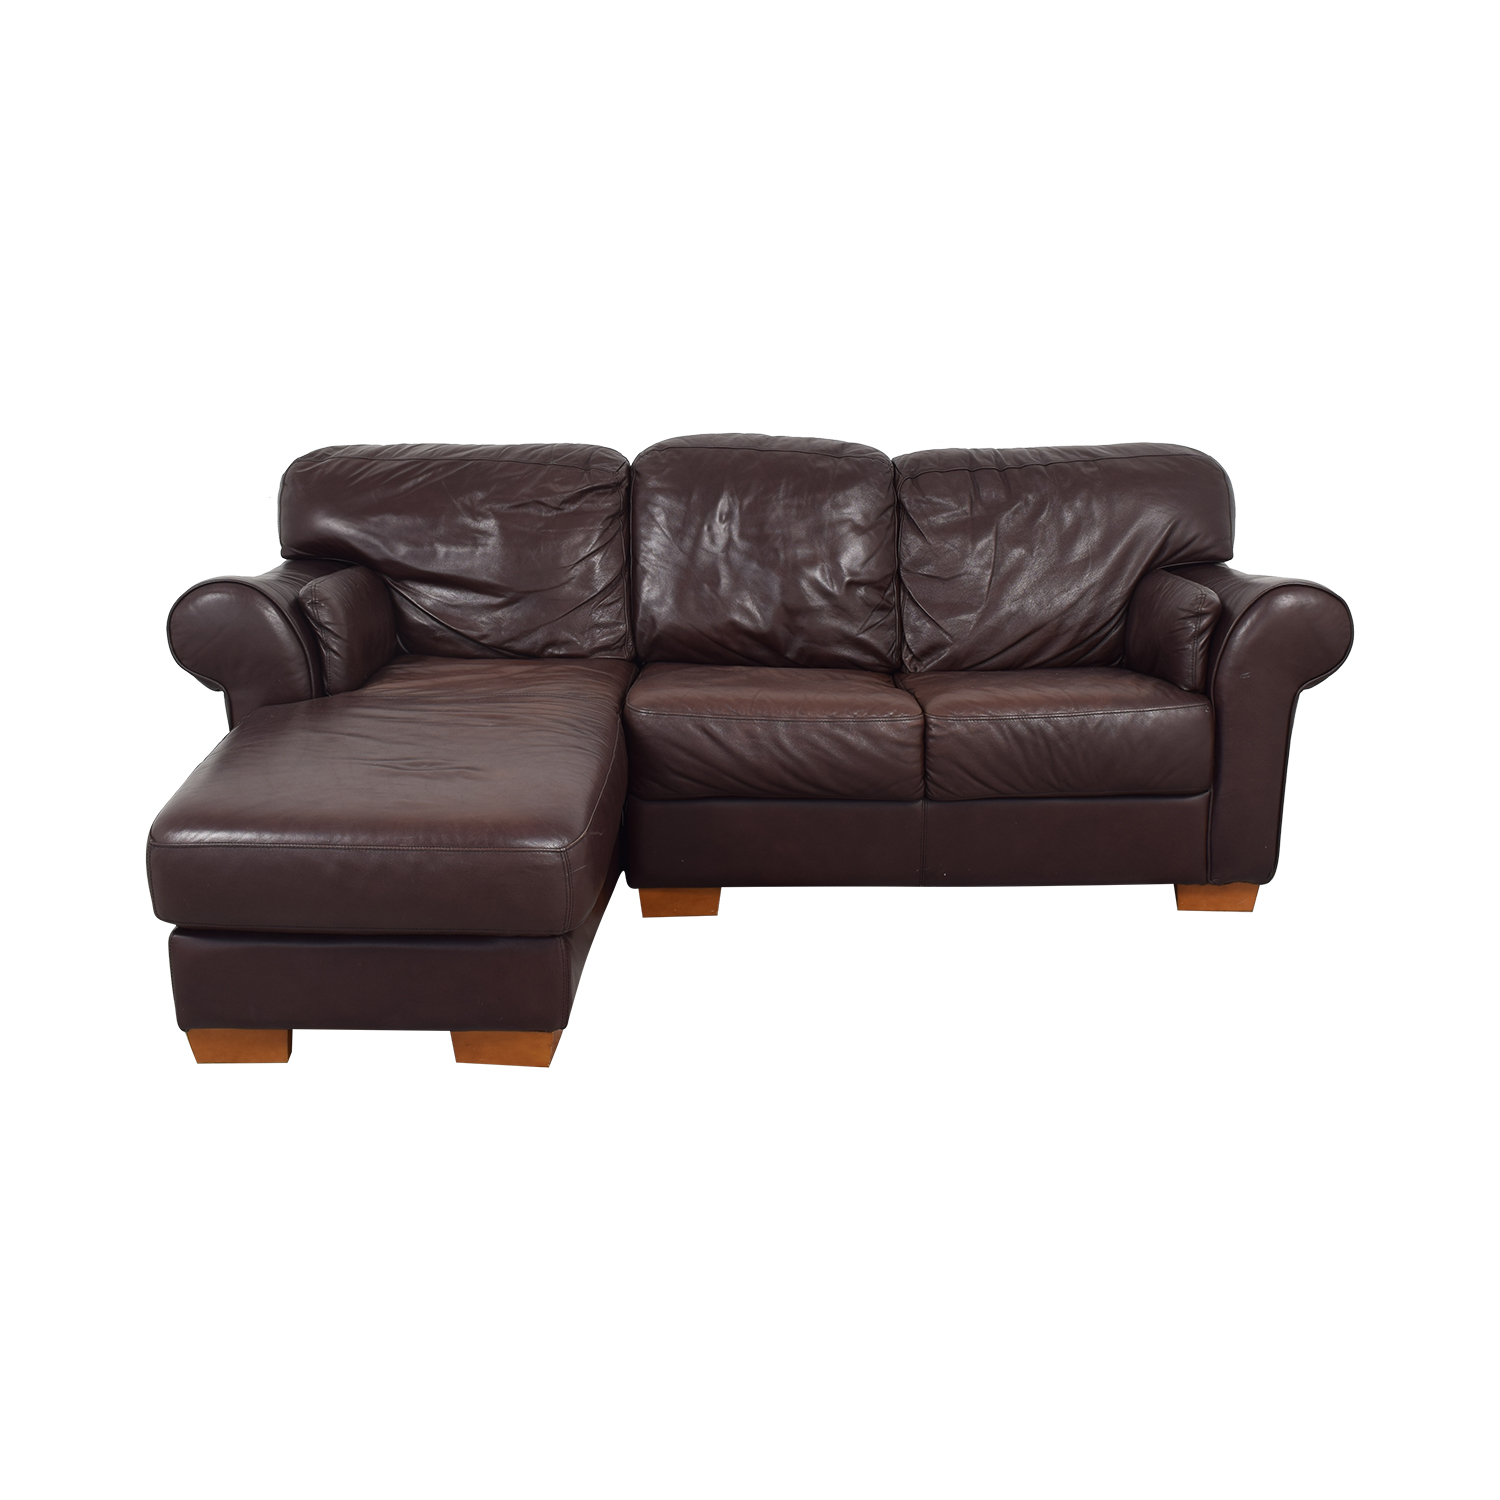 Chateau d'Ax Cindy Crawford Chaise Sectional Sofa on sale